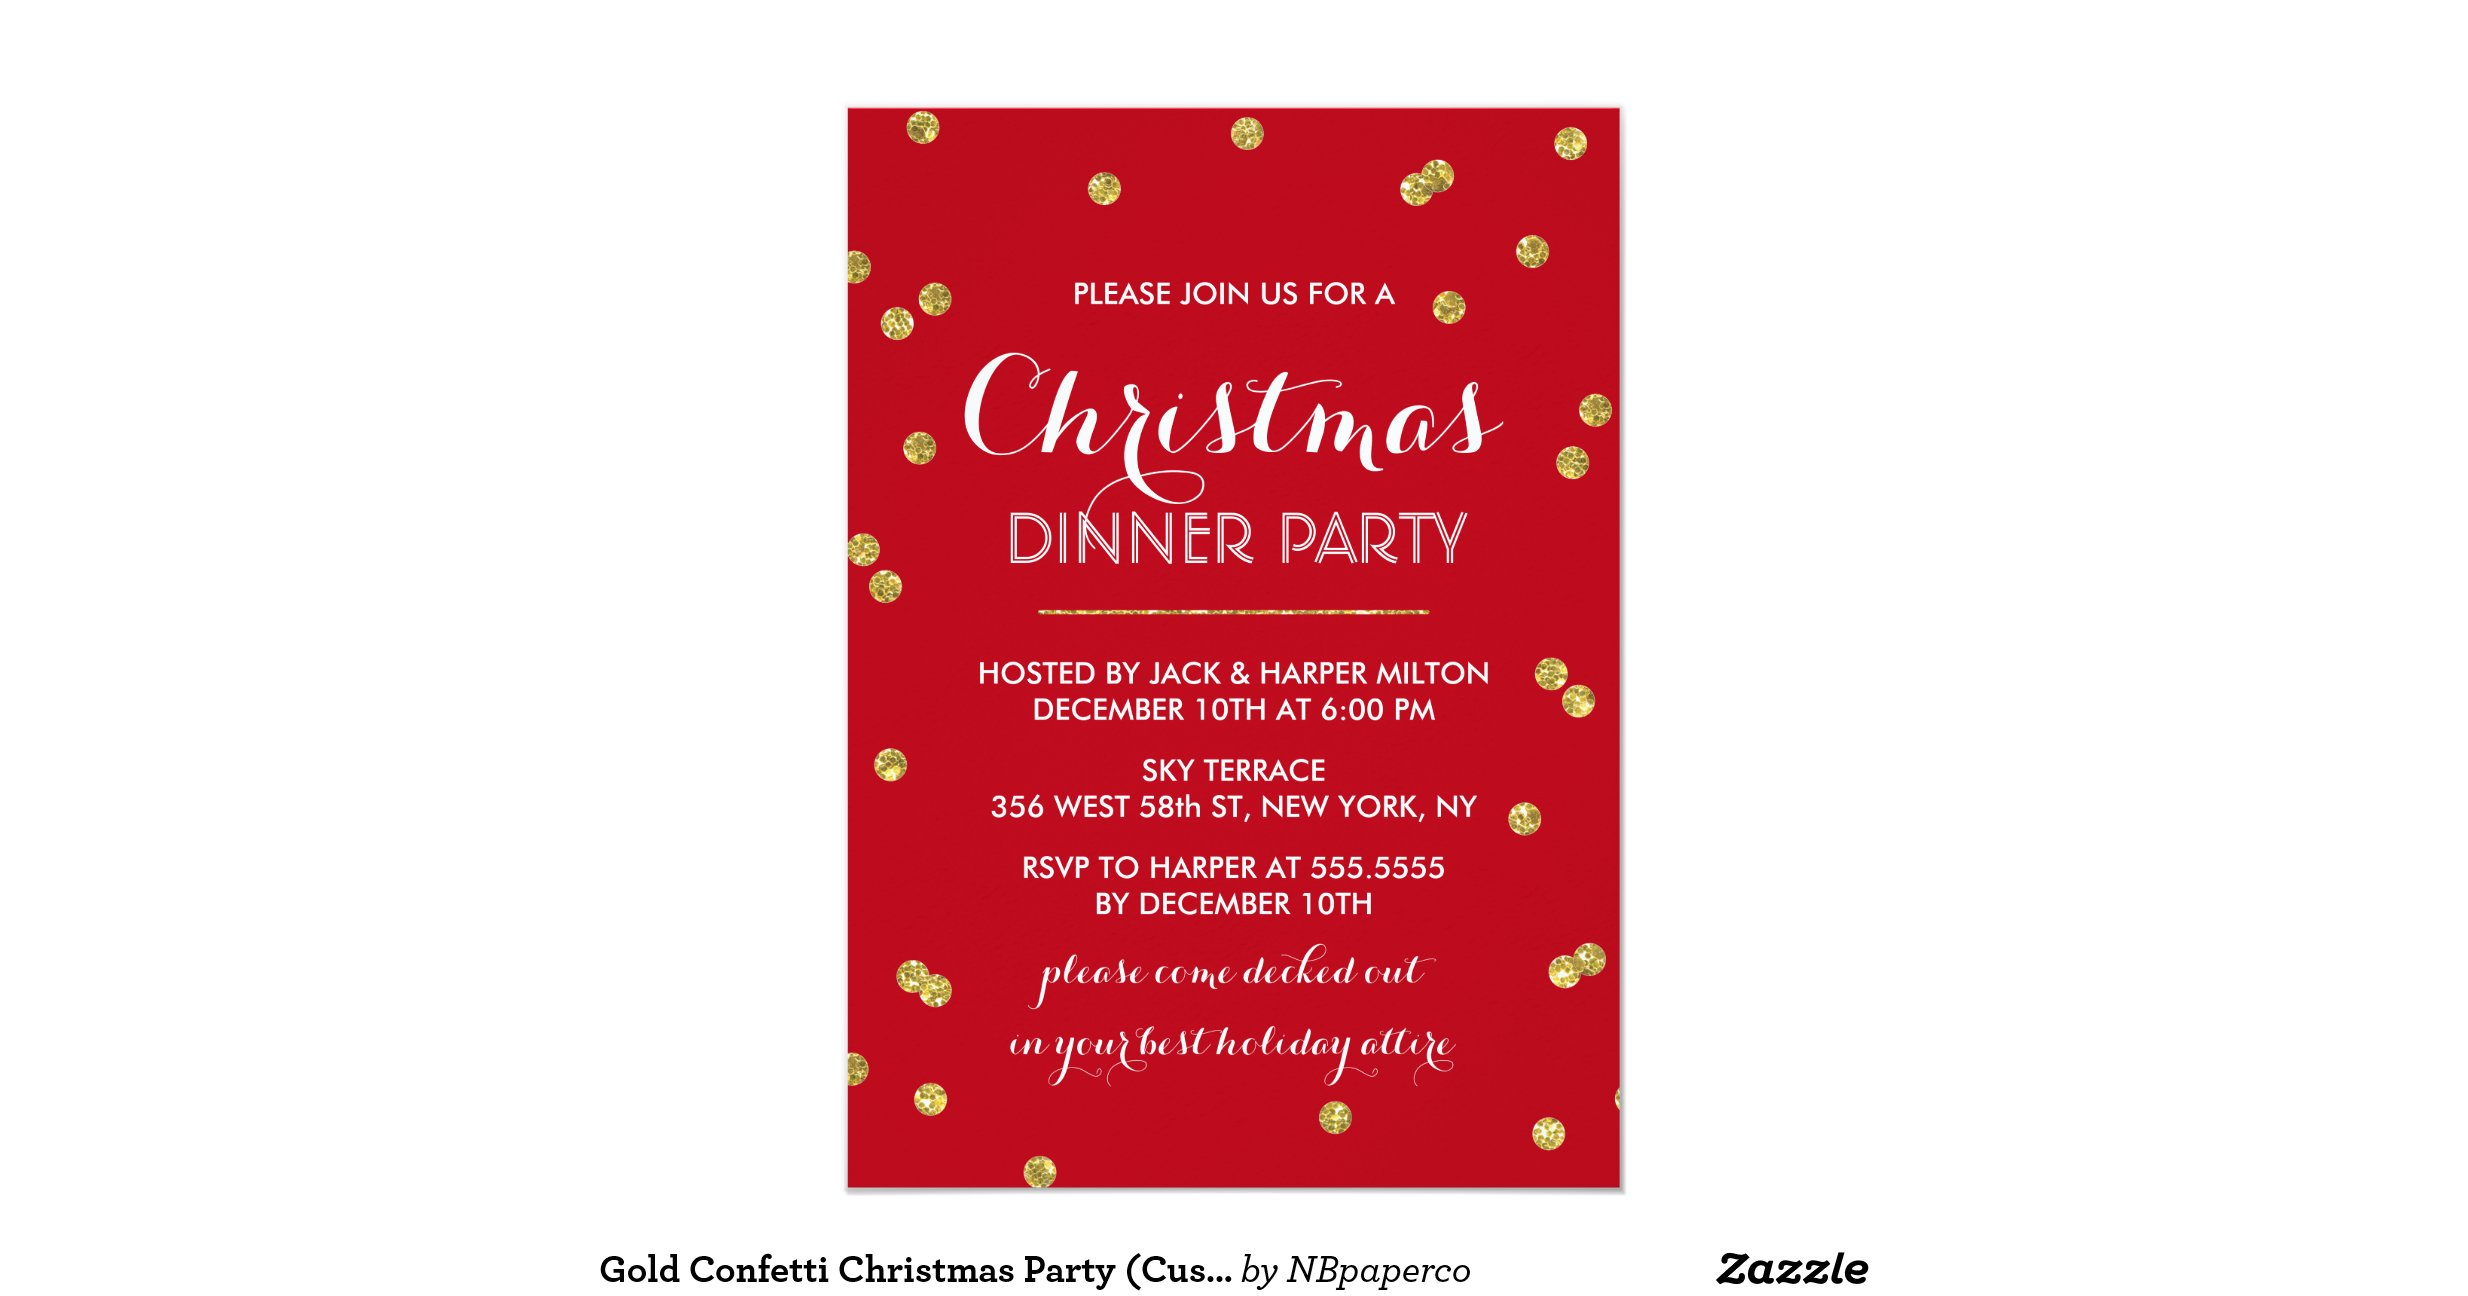 Snap Gold Star Confetti Christmas Party Invitation Zazzle photos on ...